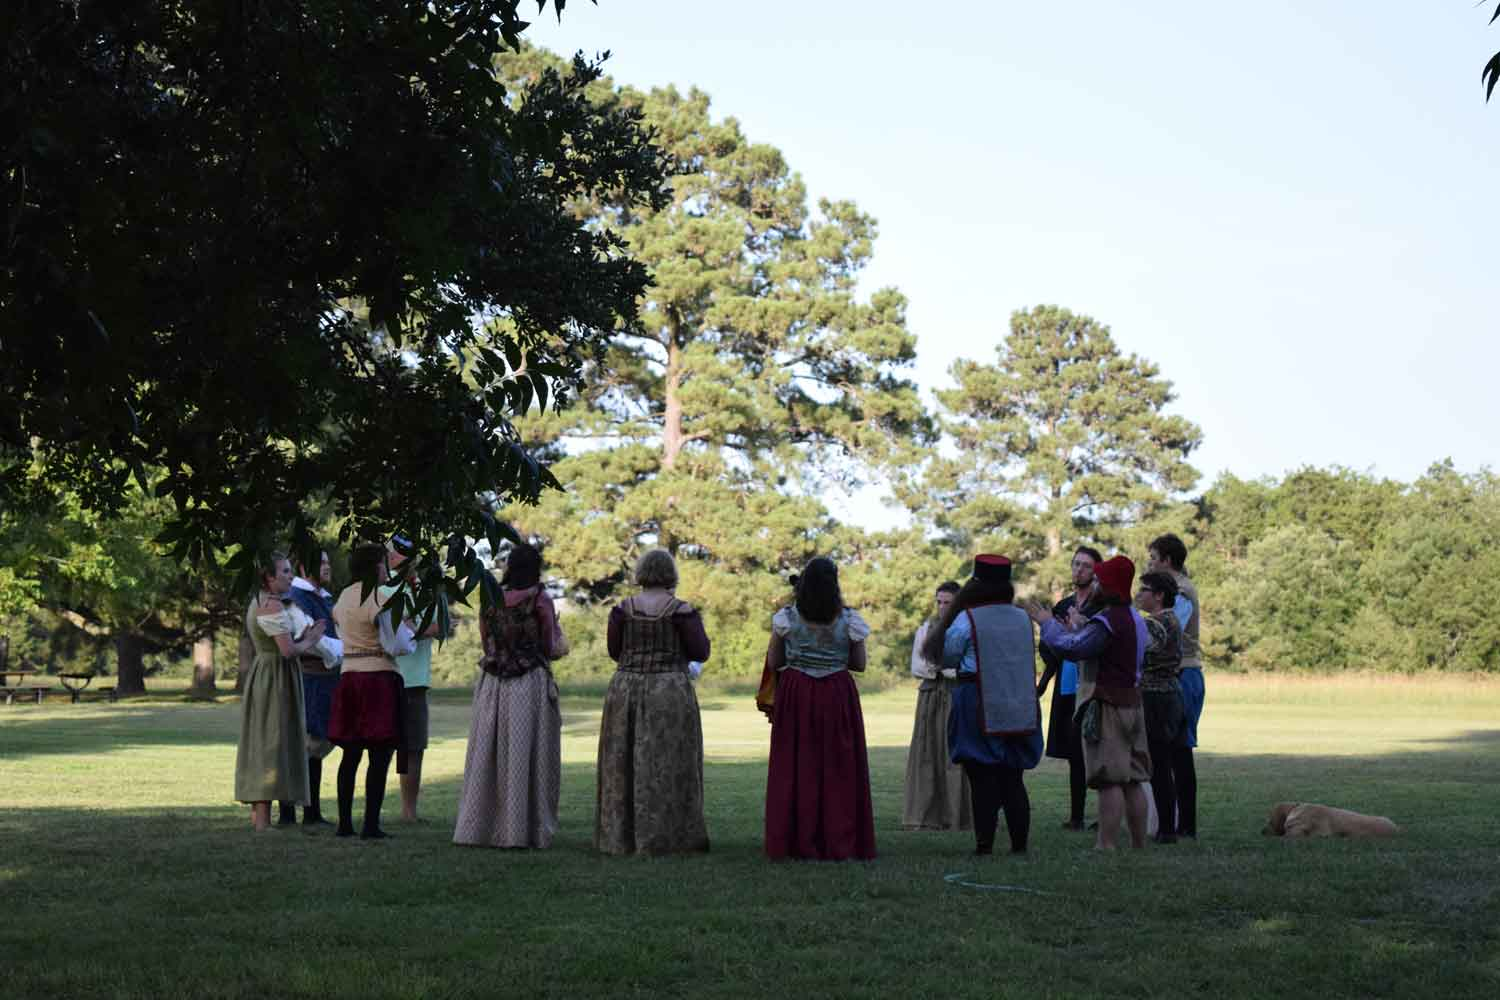 2020 Shakespeare at Winedale Spring Class Application Now Available - Due Oct. 24